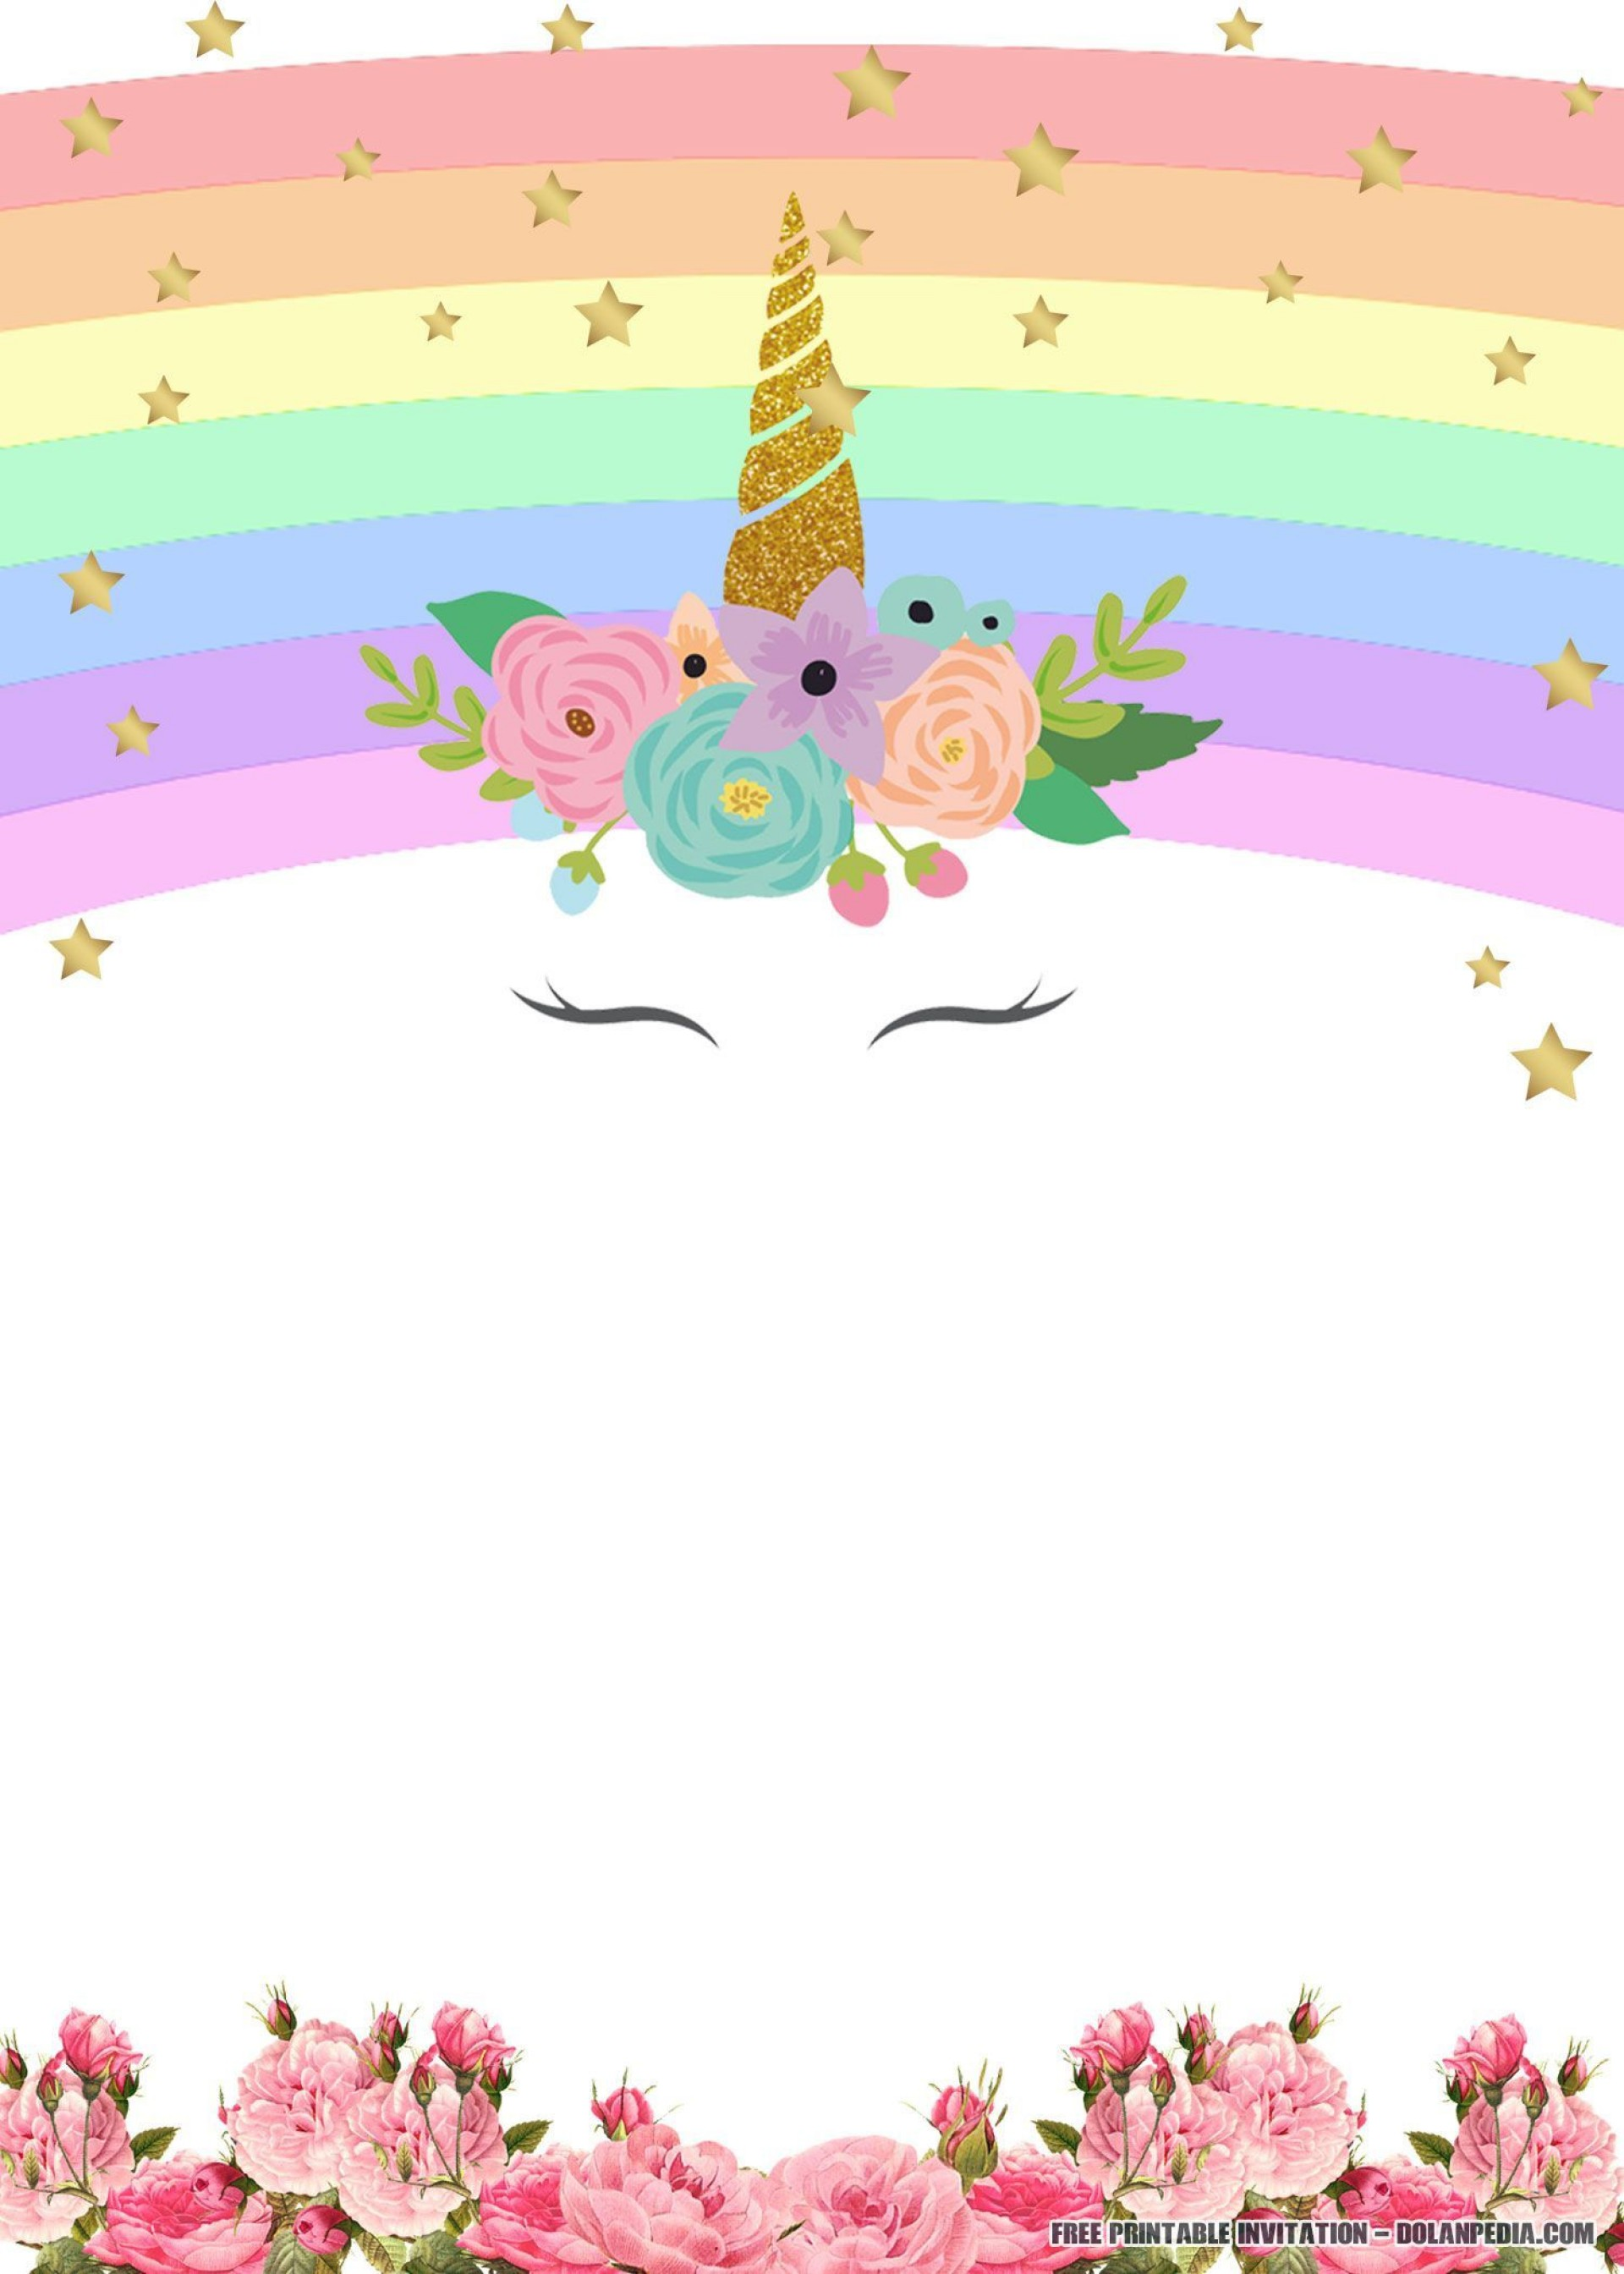 003 Formidable Unicorn Baby Shower Template Free Download Image  Printable Invitation1920